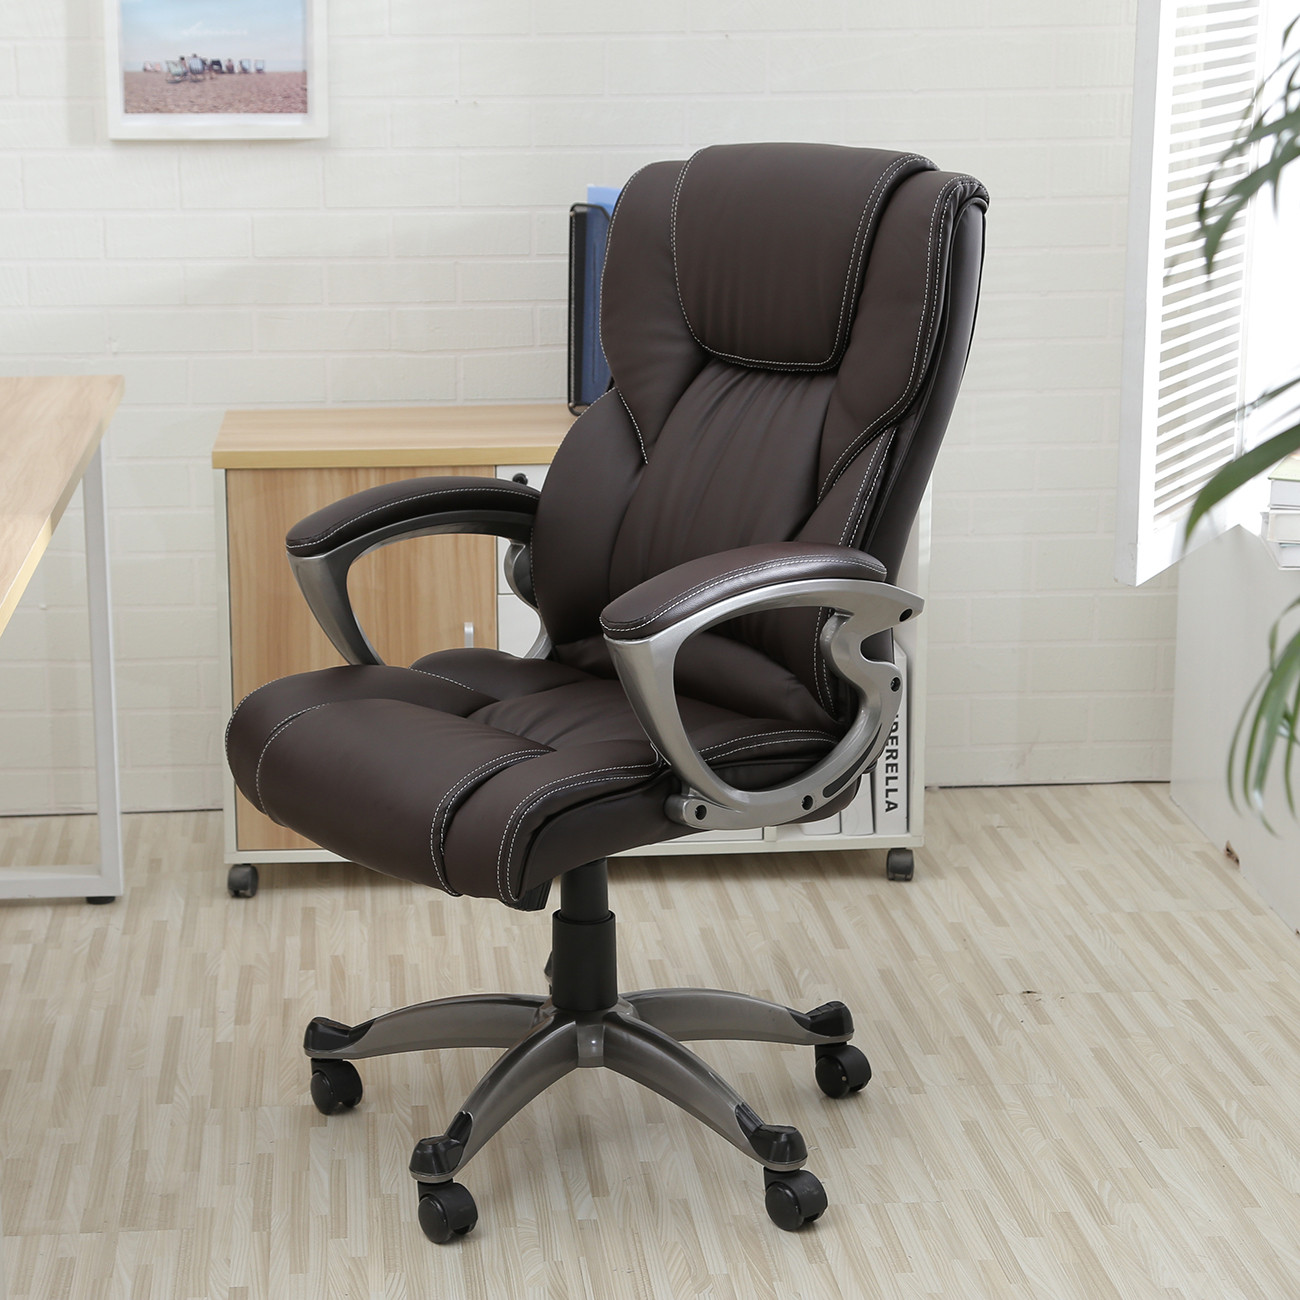 Best ideas about High Office Chair . Save or Pin Executive fice Chair High Back Task Ergonomic puter Now.